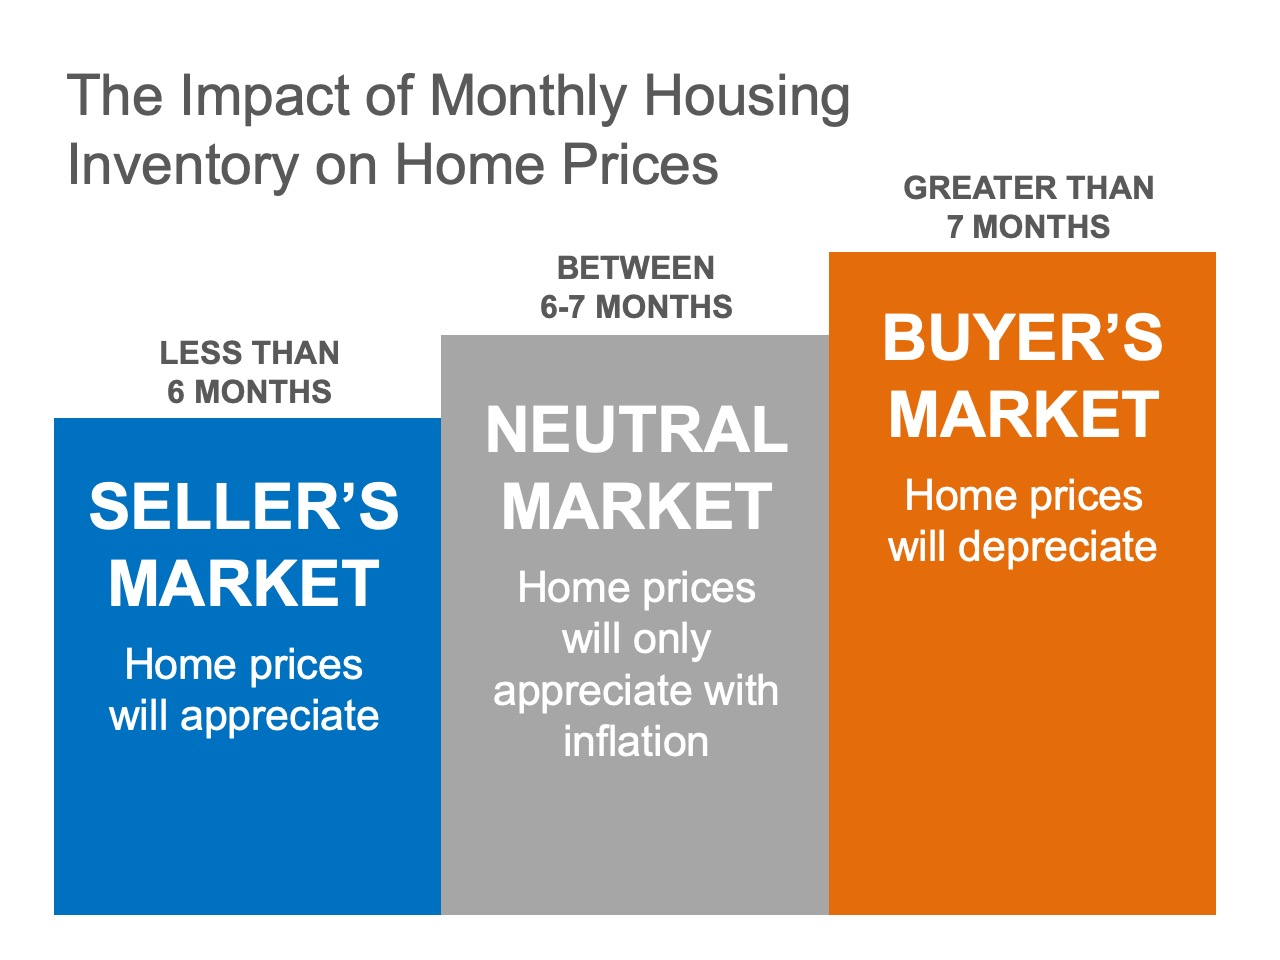 Existing-Home Sales Report Indicates Now Is a Great Time to Sell | MyKCM